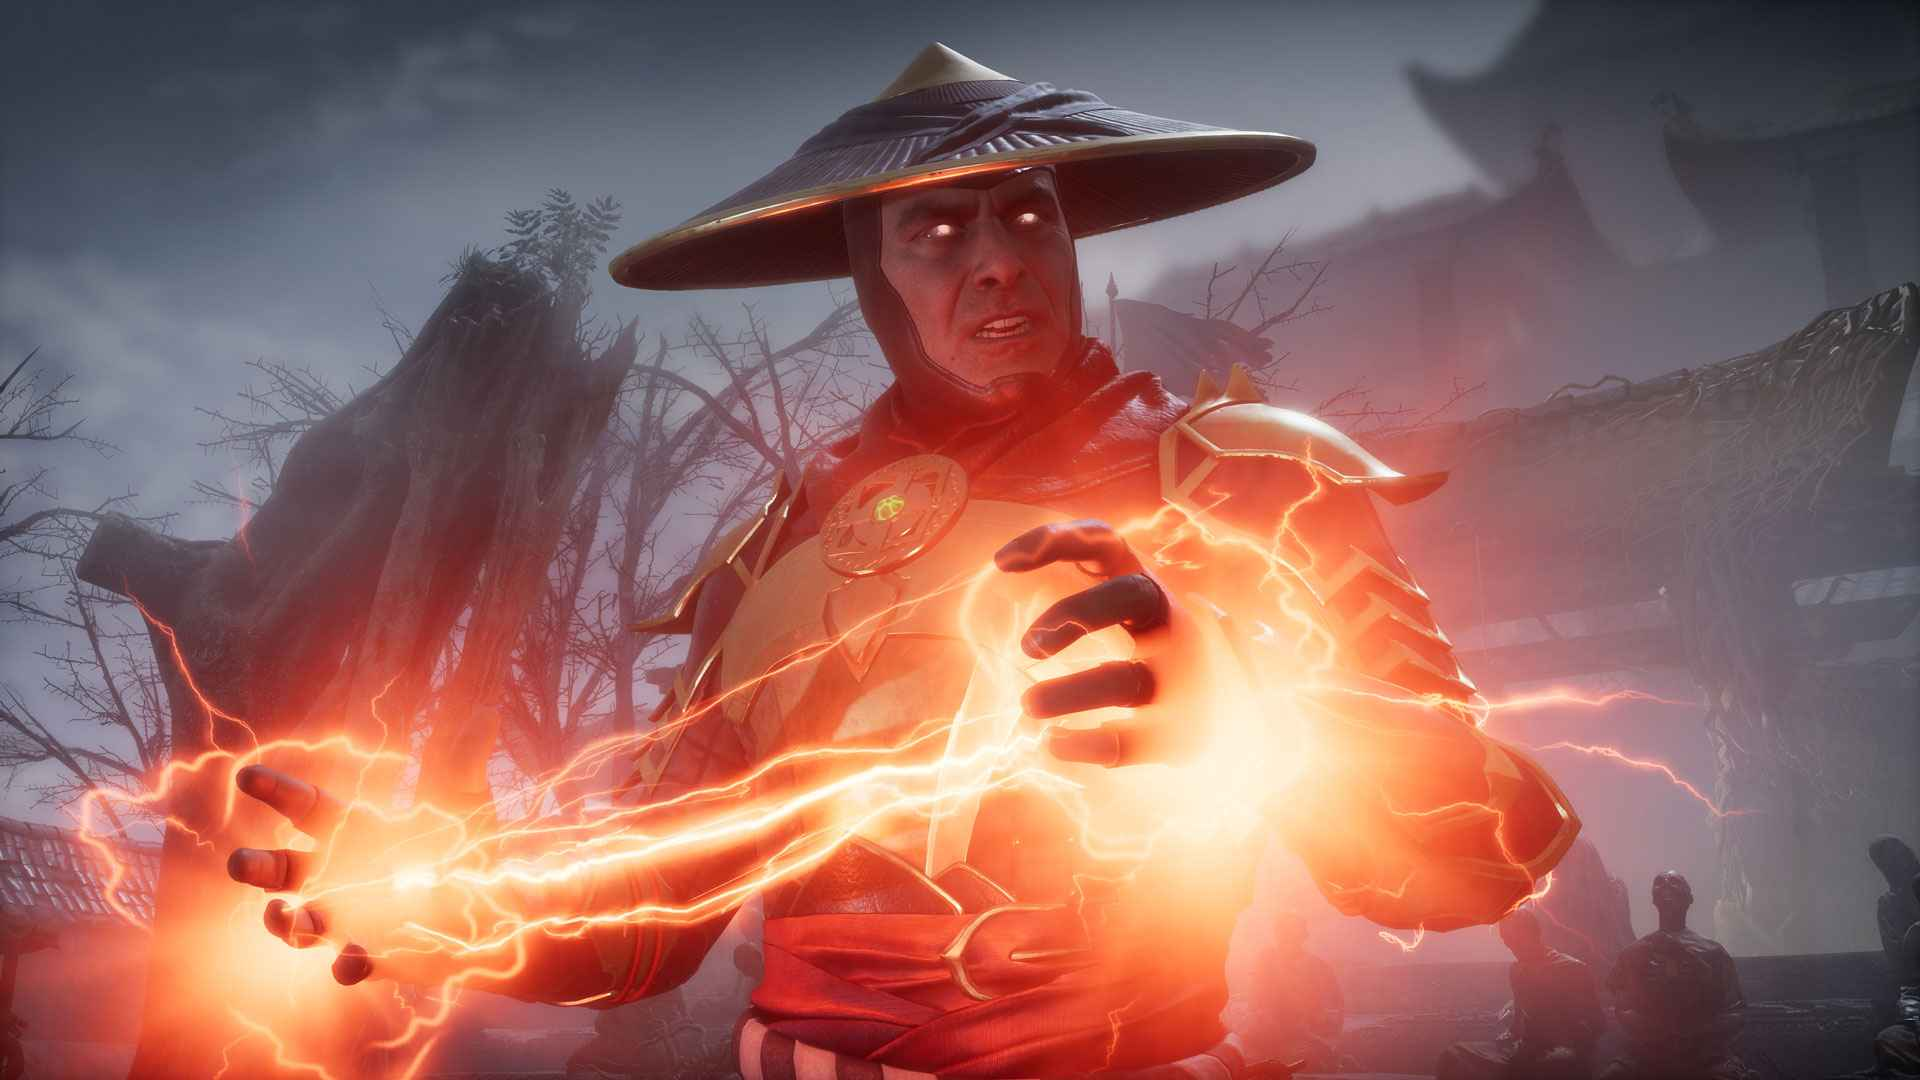 Mortal Kombat 11 Cover Art Revealed